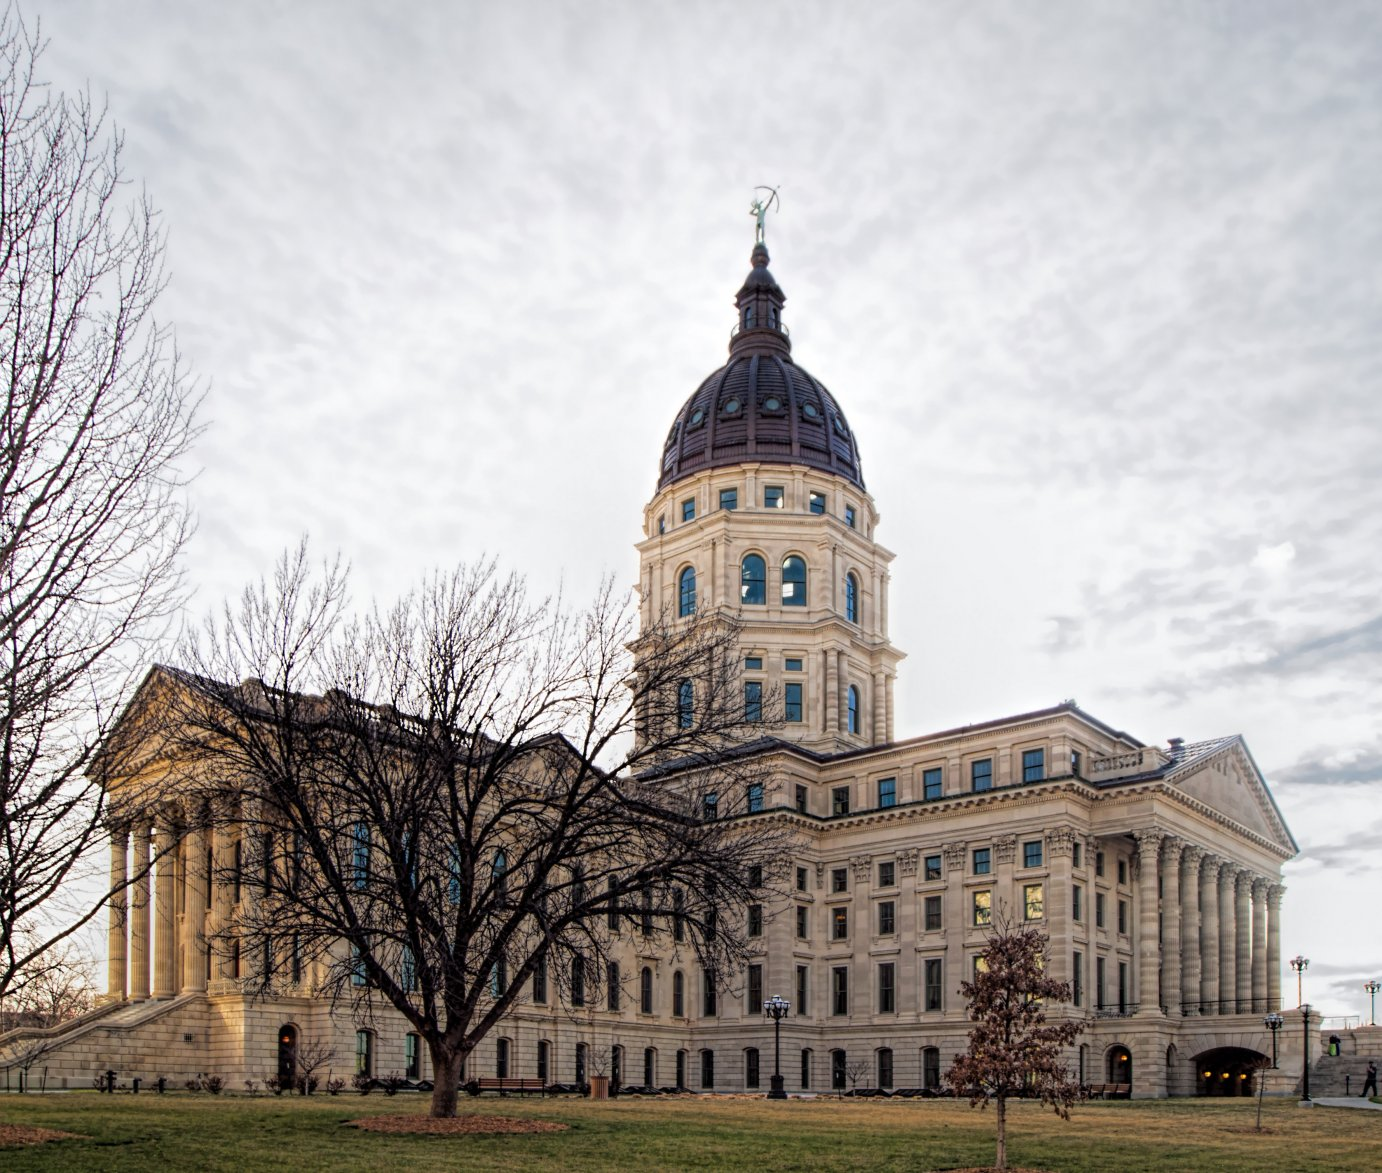 Kansas Statehouse (Photo by Dan Skinner)